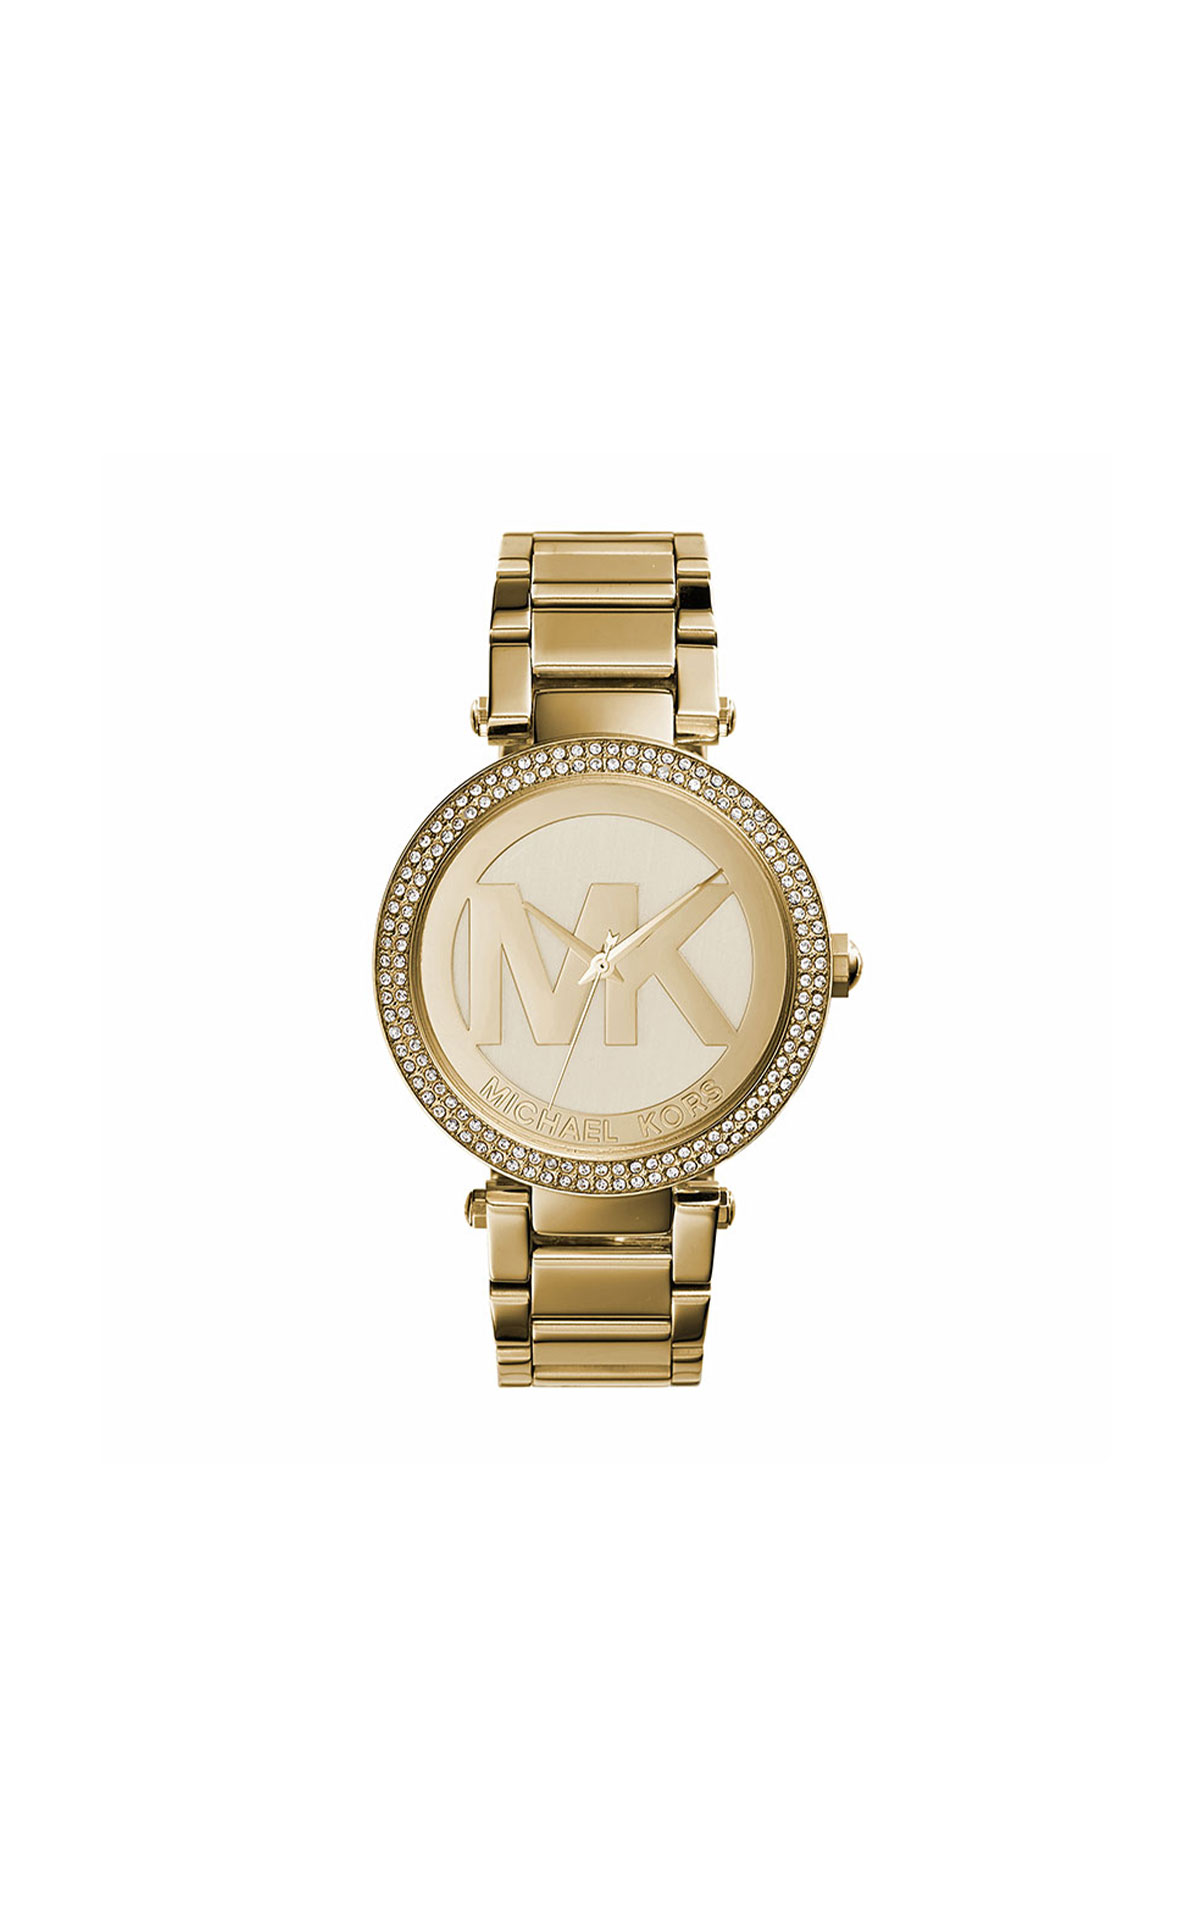 Michael Kors Gold MK logo watch from Bicester Village